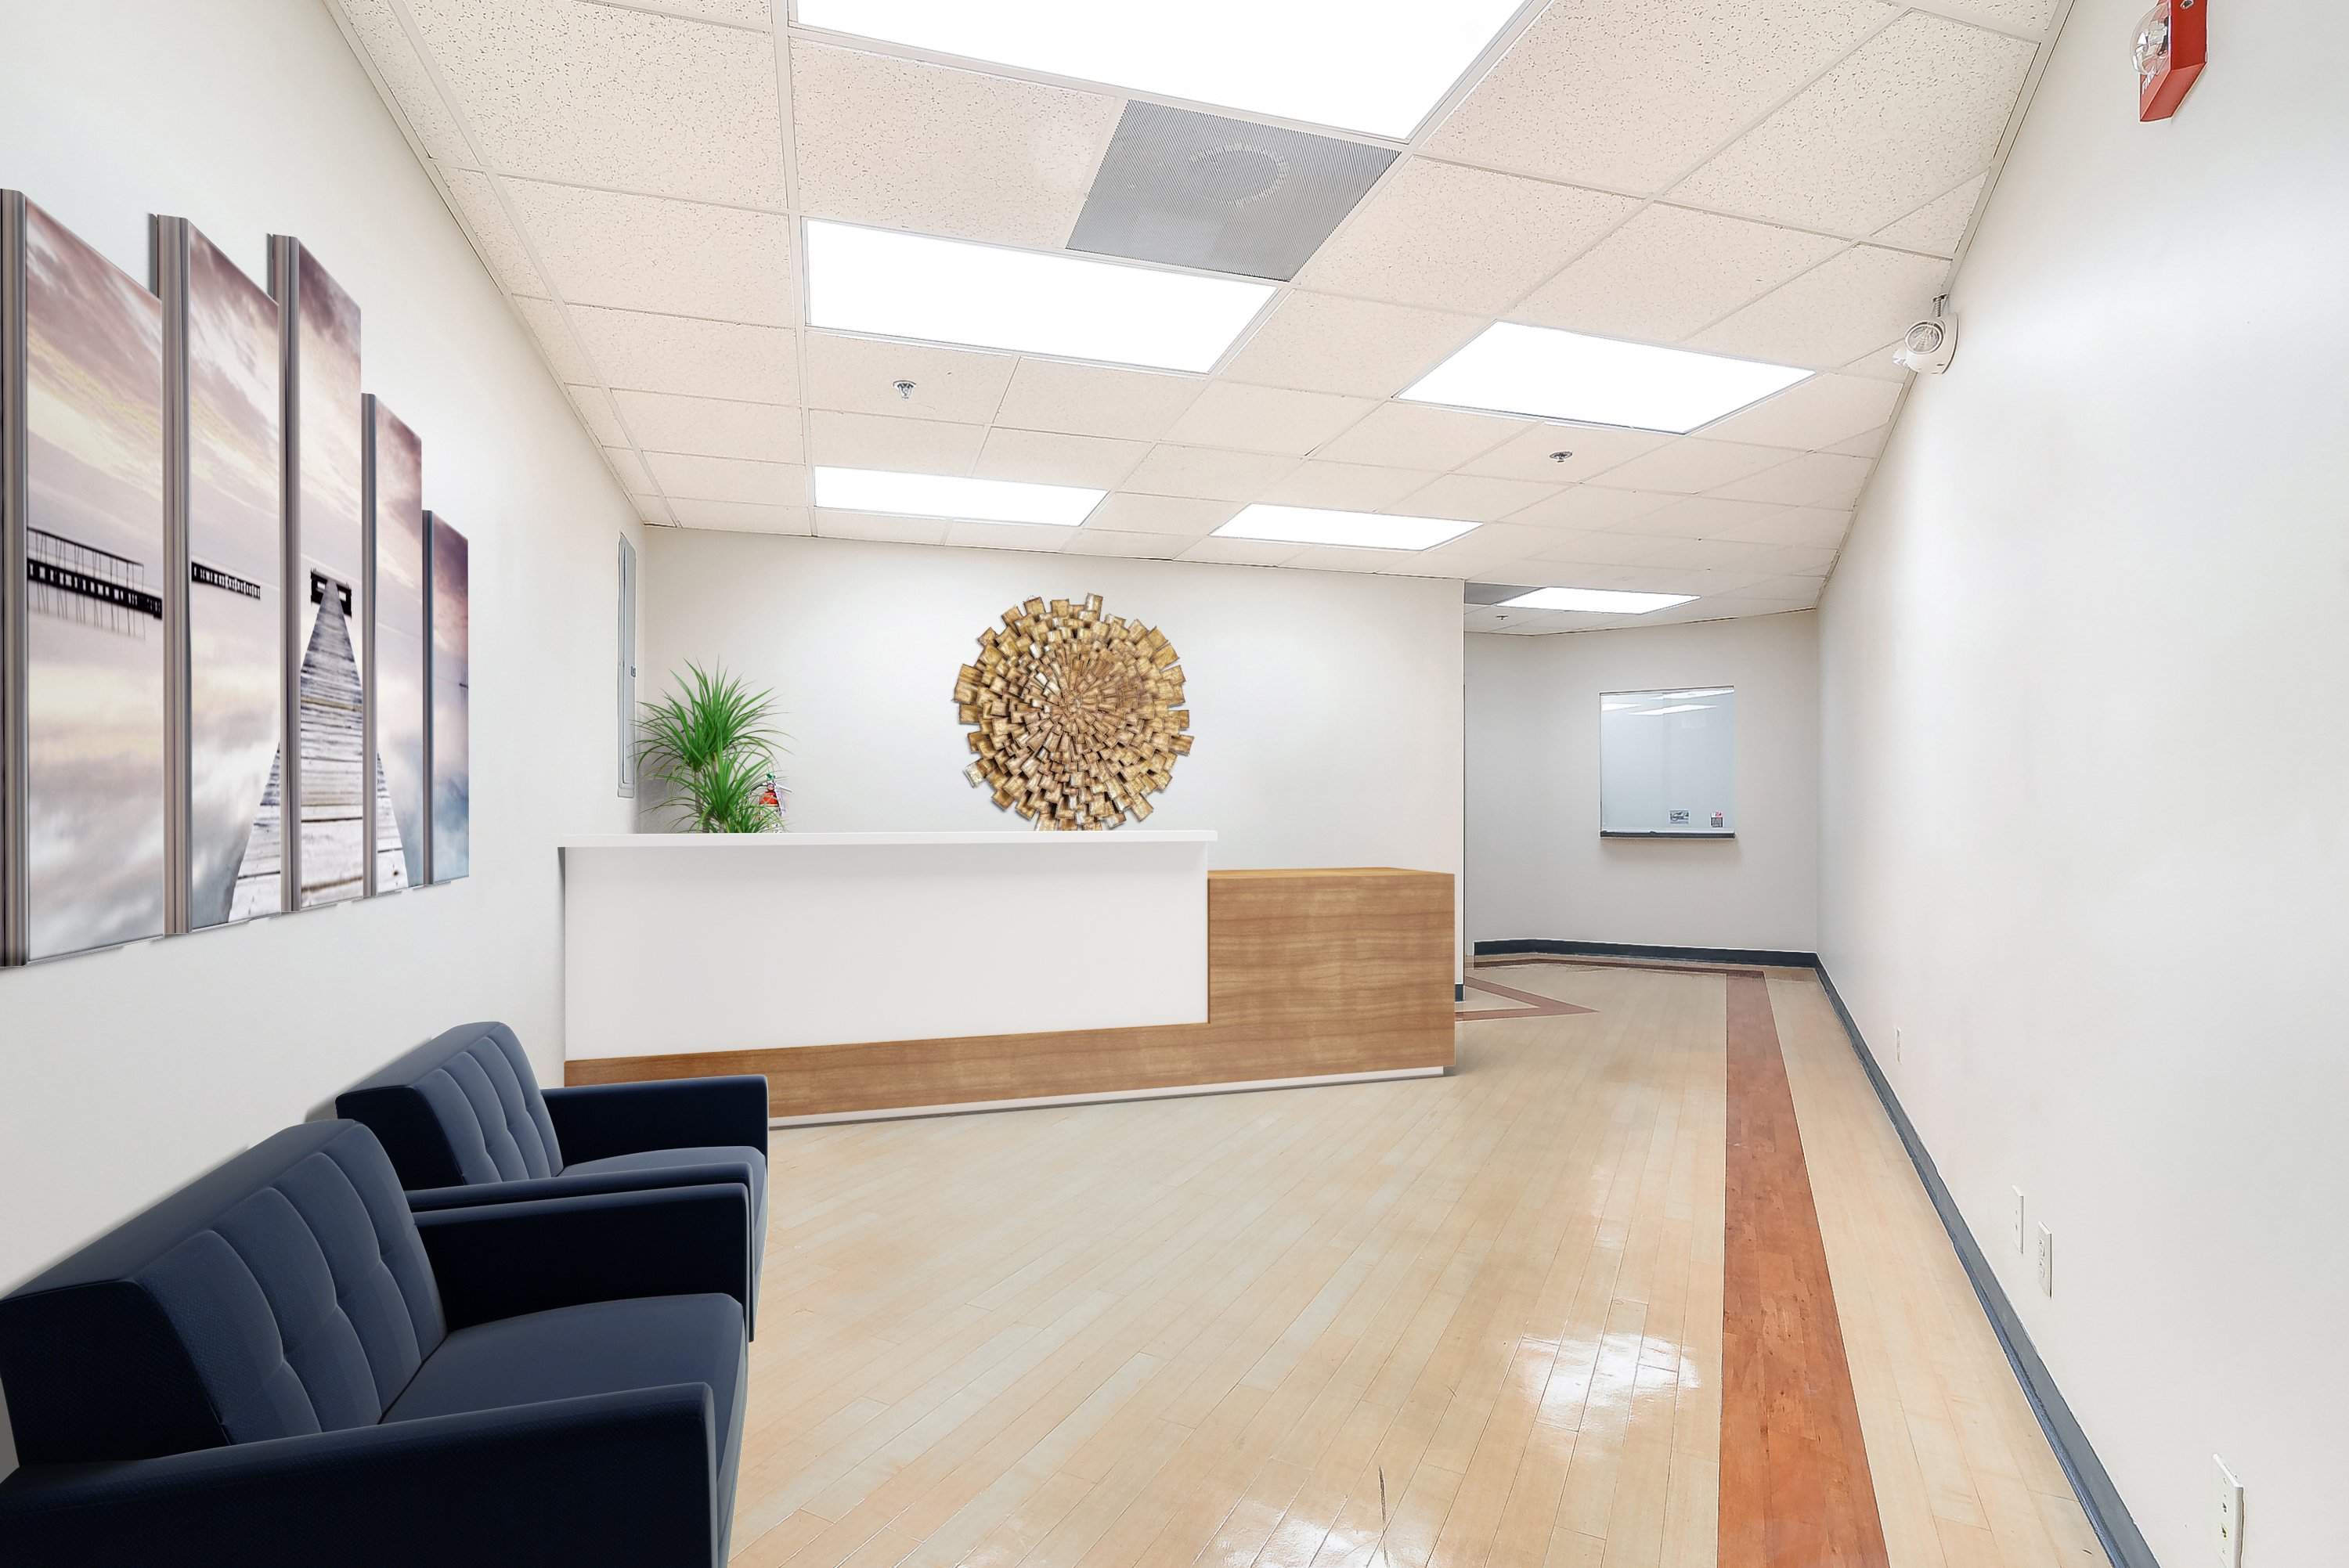 Medical reception office with wooden artwork.